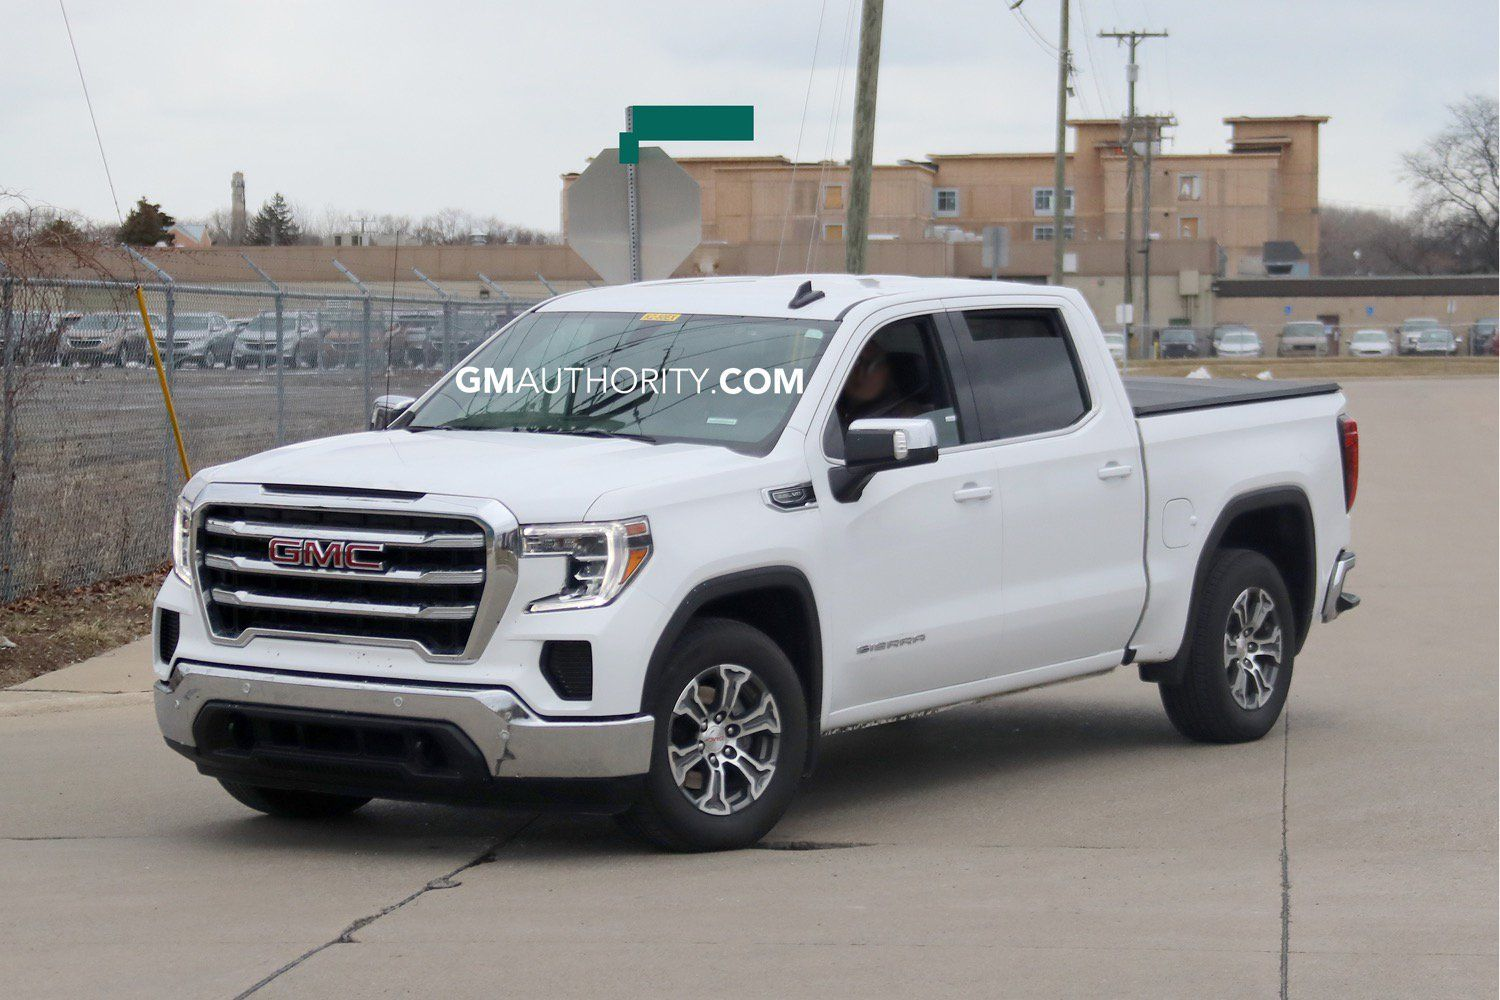 new 2019 gmc sierra pictures show sle trim level gm authority rh pinterest com